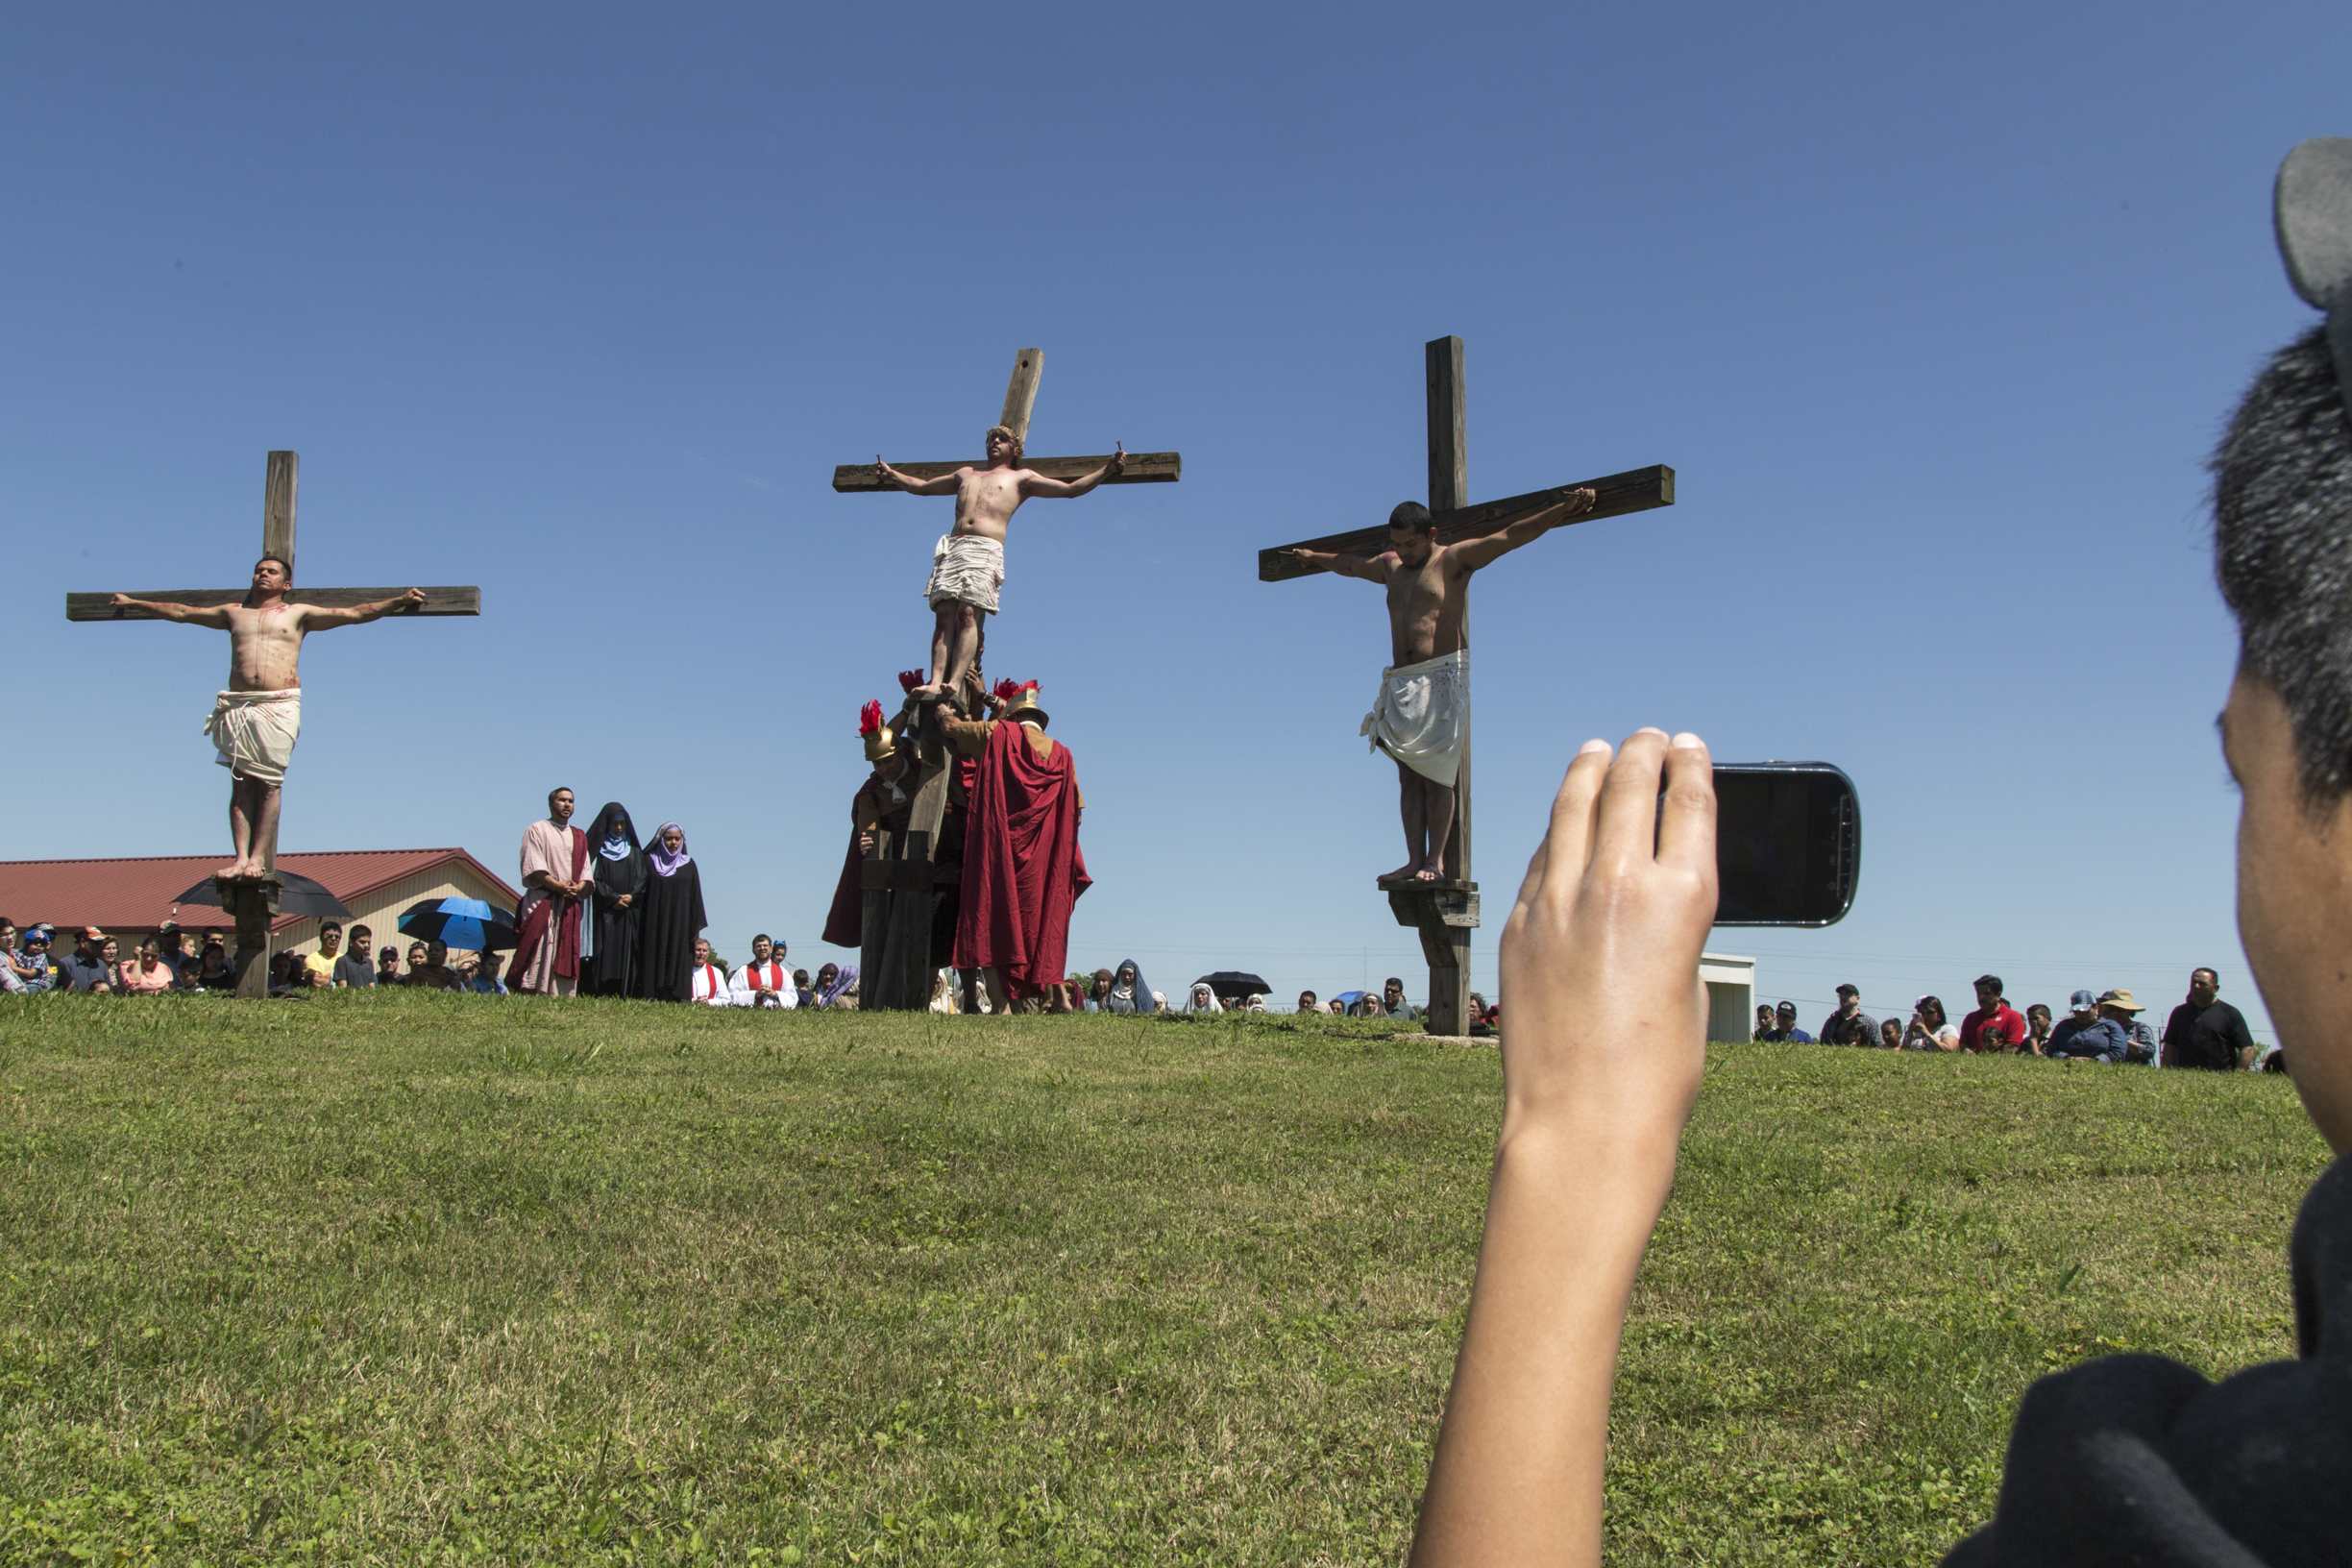 Spectators film and take photos of the reenactment of the crucifixion of Christ.